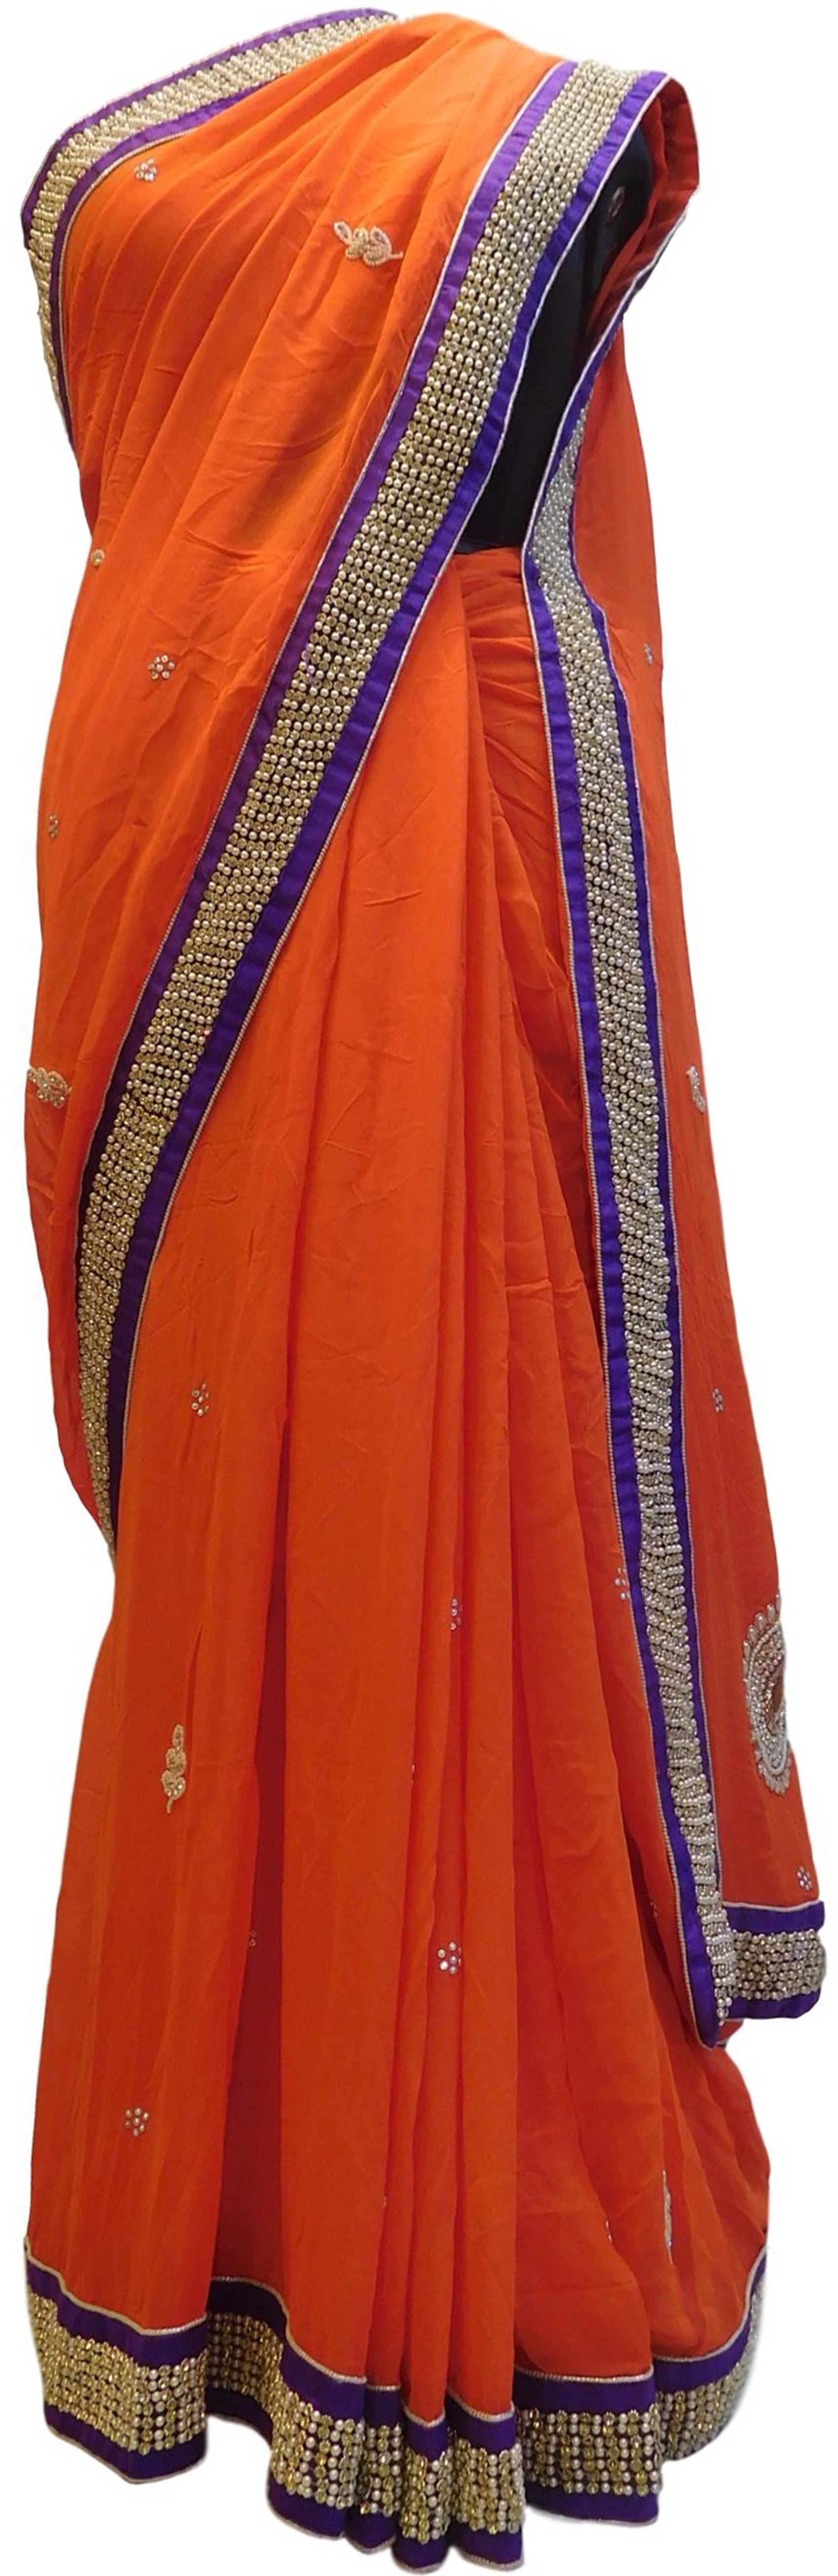 Orange Designer PartyWear Georgette (Viscos) Cutdana Pearl Cutdana Stone Bullion Thread Beads Hand Embroidery Work Saree Sari